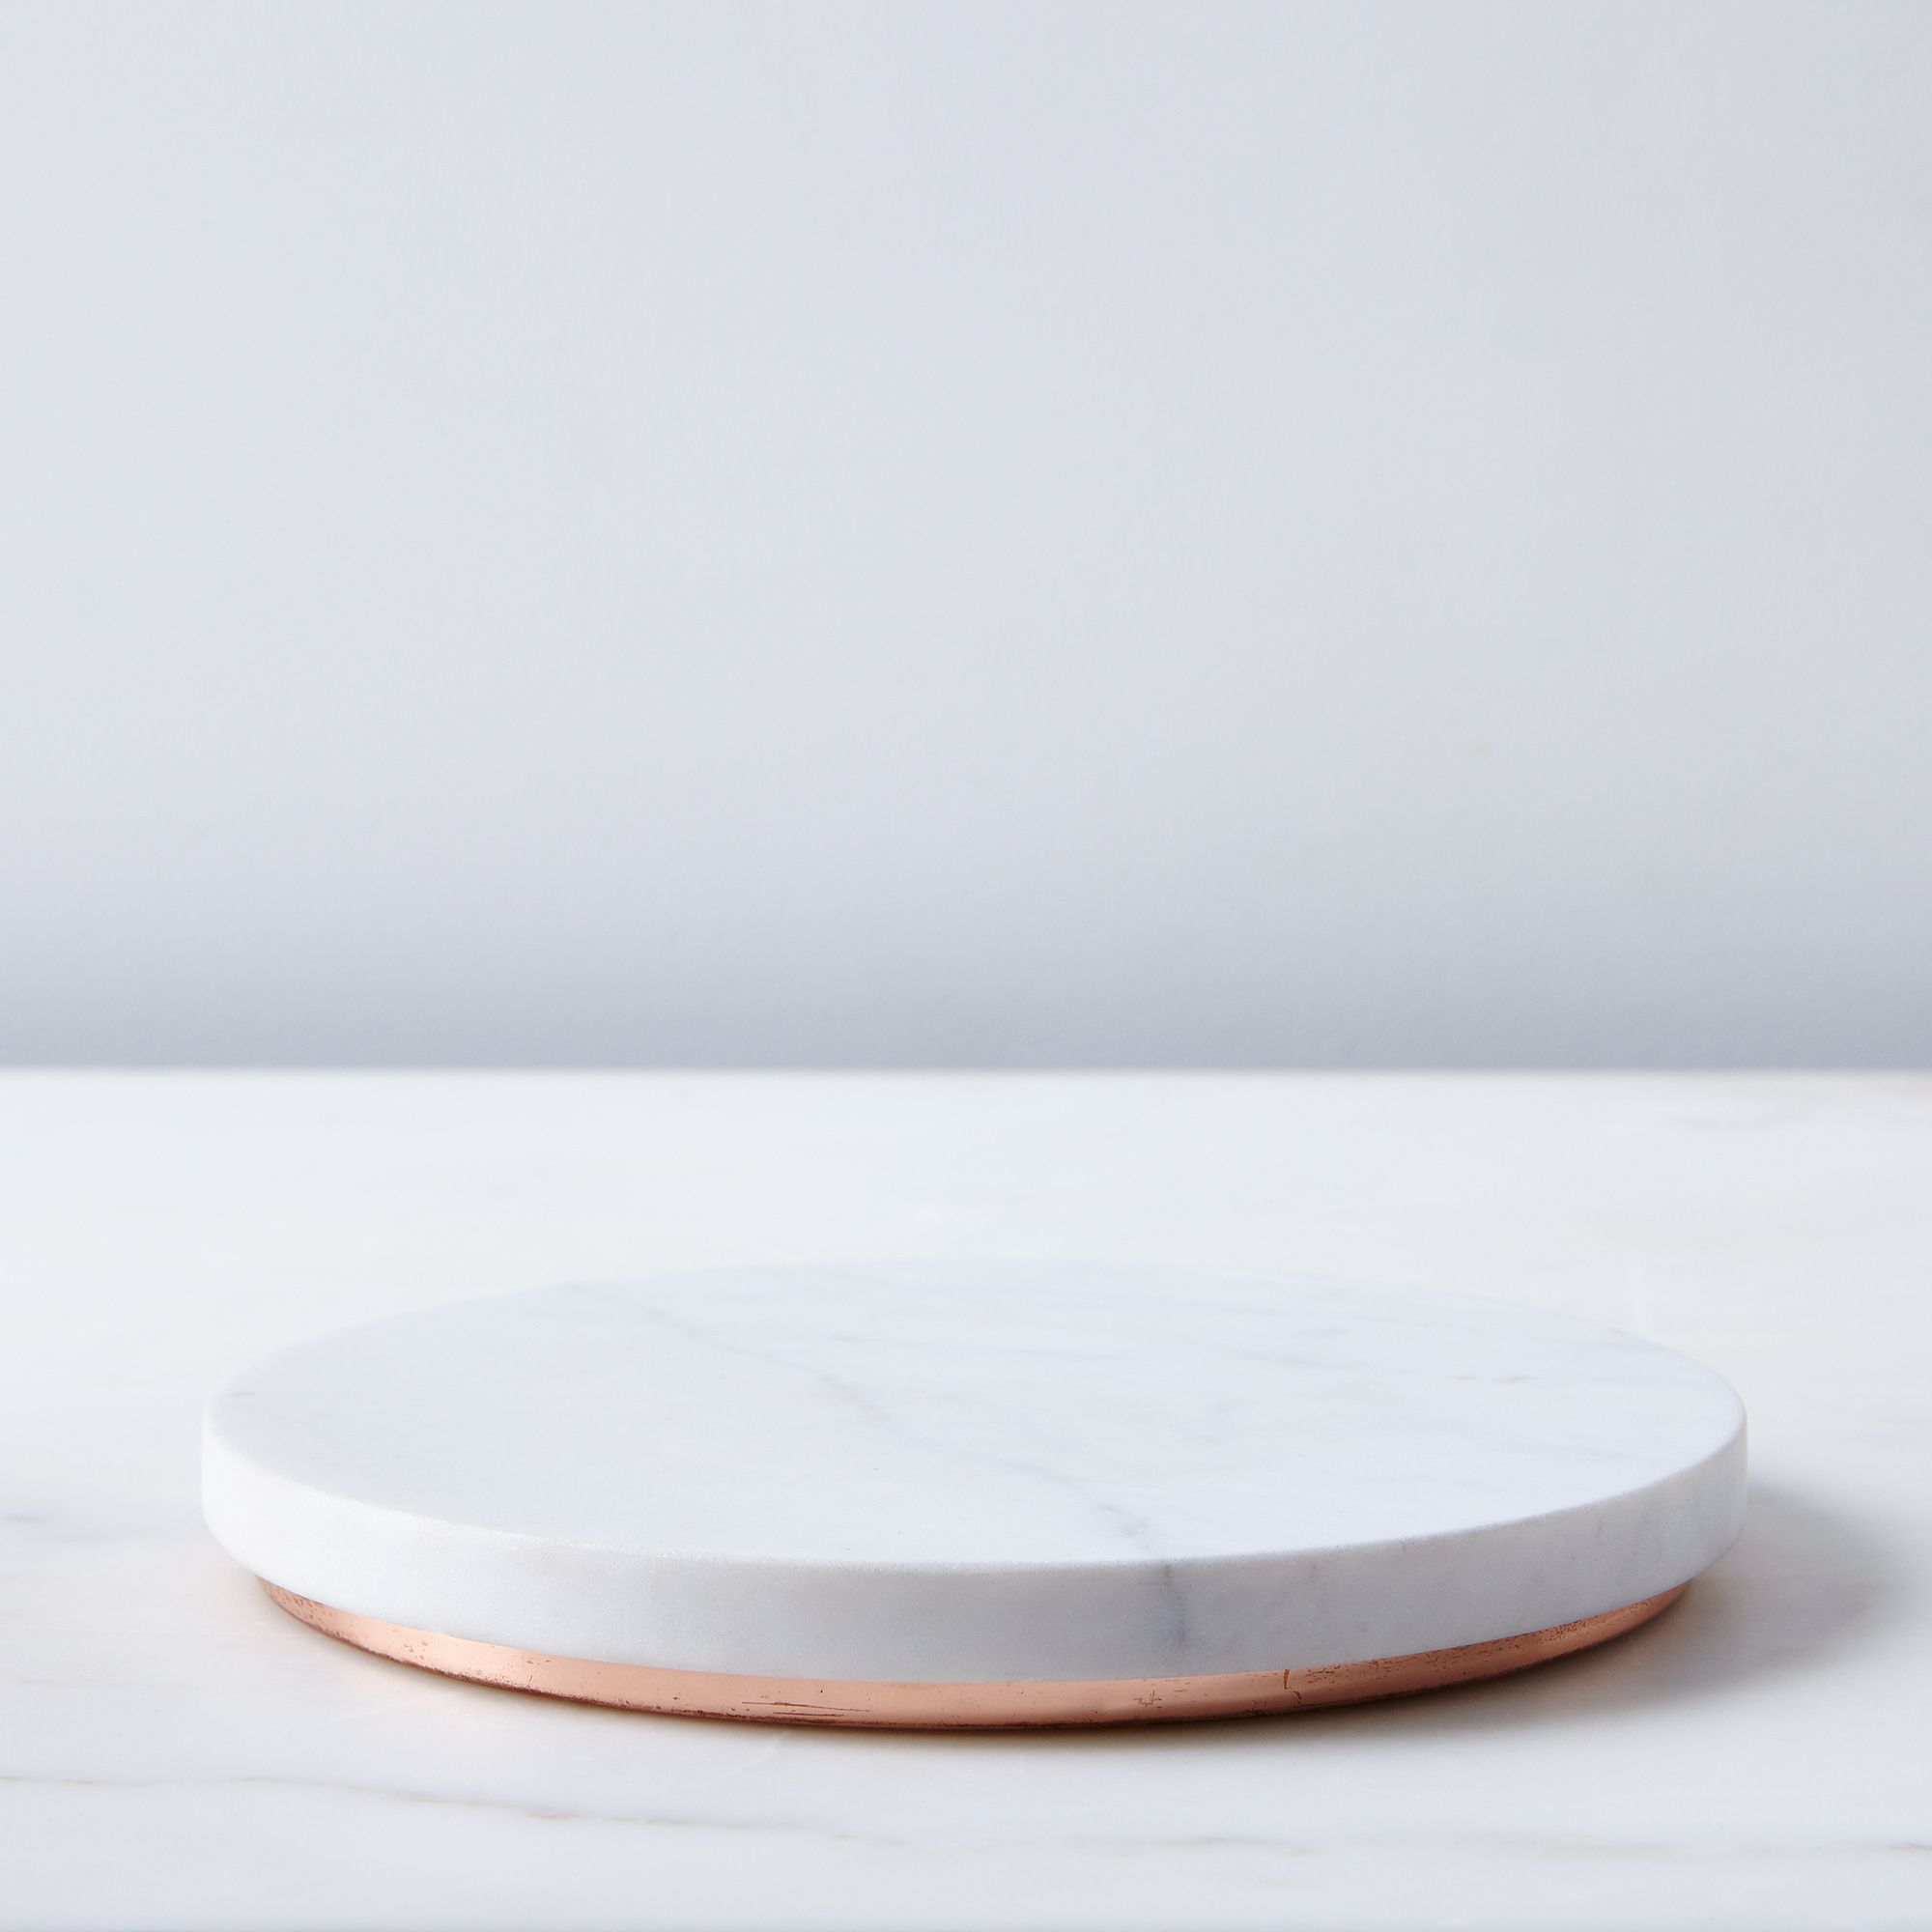 Buy Now Marble & Metal Trivet – White & Copper Before Special Offer Ends